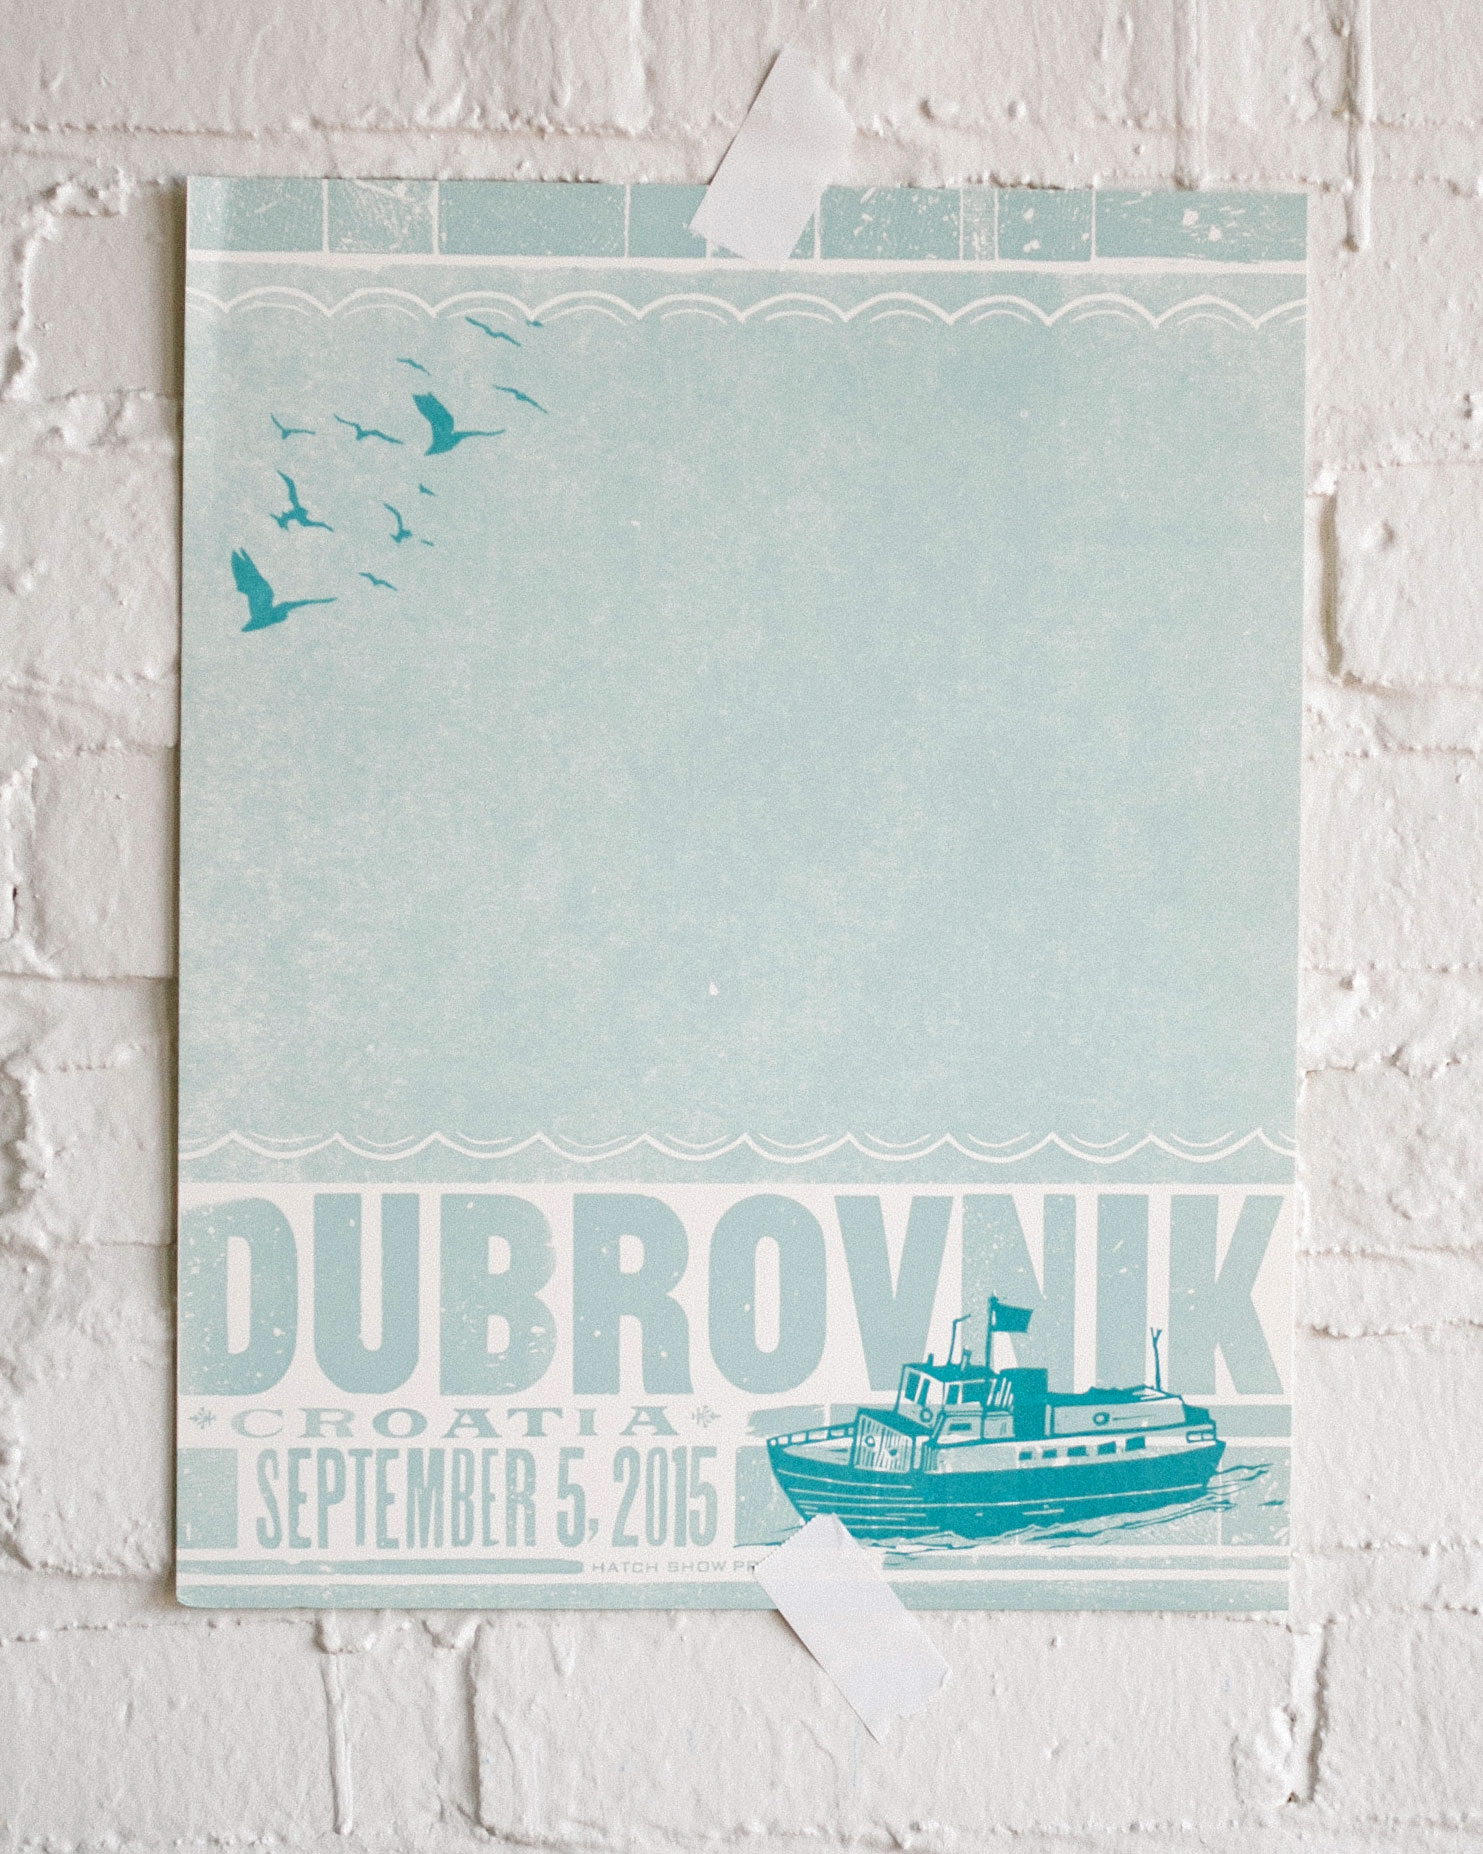 This Dubrovnik poster save-the-date is exactly the kind of memento guests can hold onto for years to come, remembering that destination wedding they went to in Croatia. With a vintage effect, this poster looks more like an announcement for a concert than a wedding, and that's half the appeal since it was created and printed at music poster design house Hatch Show Print.